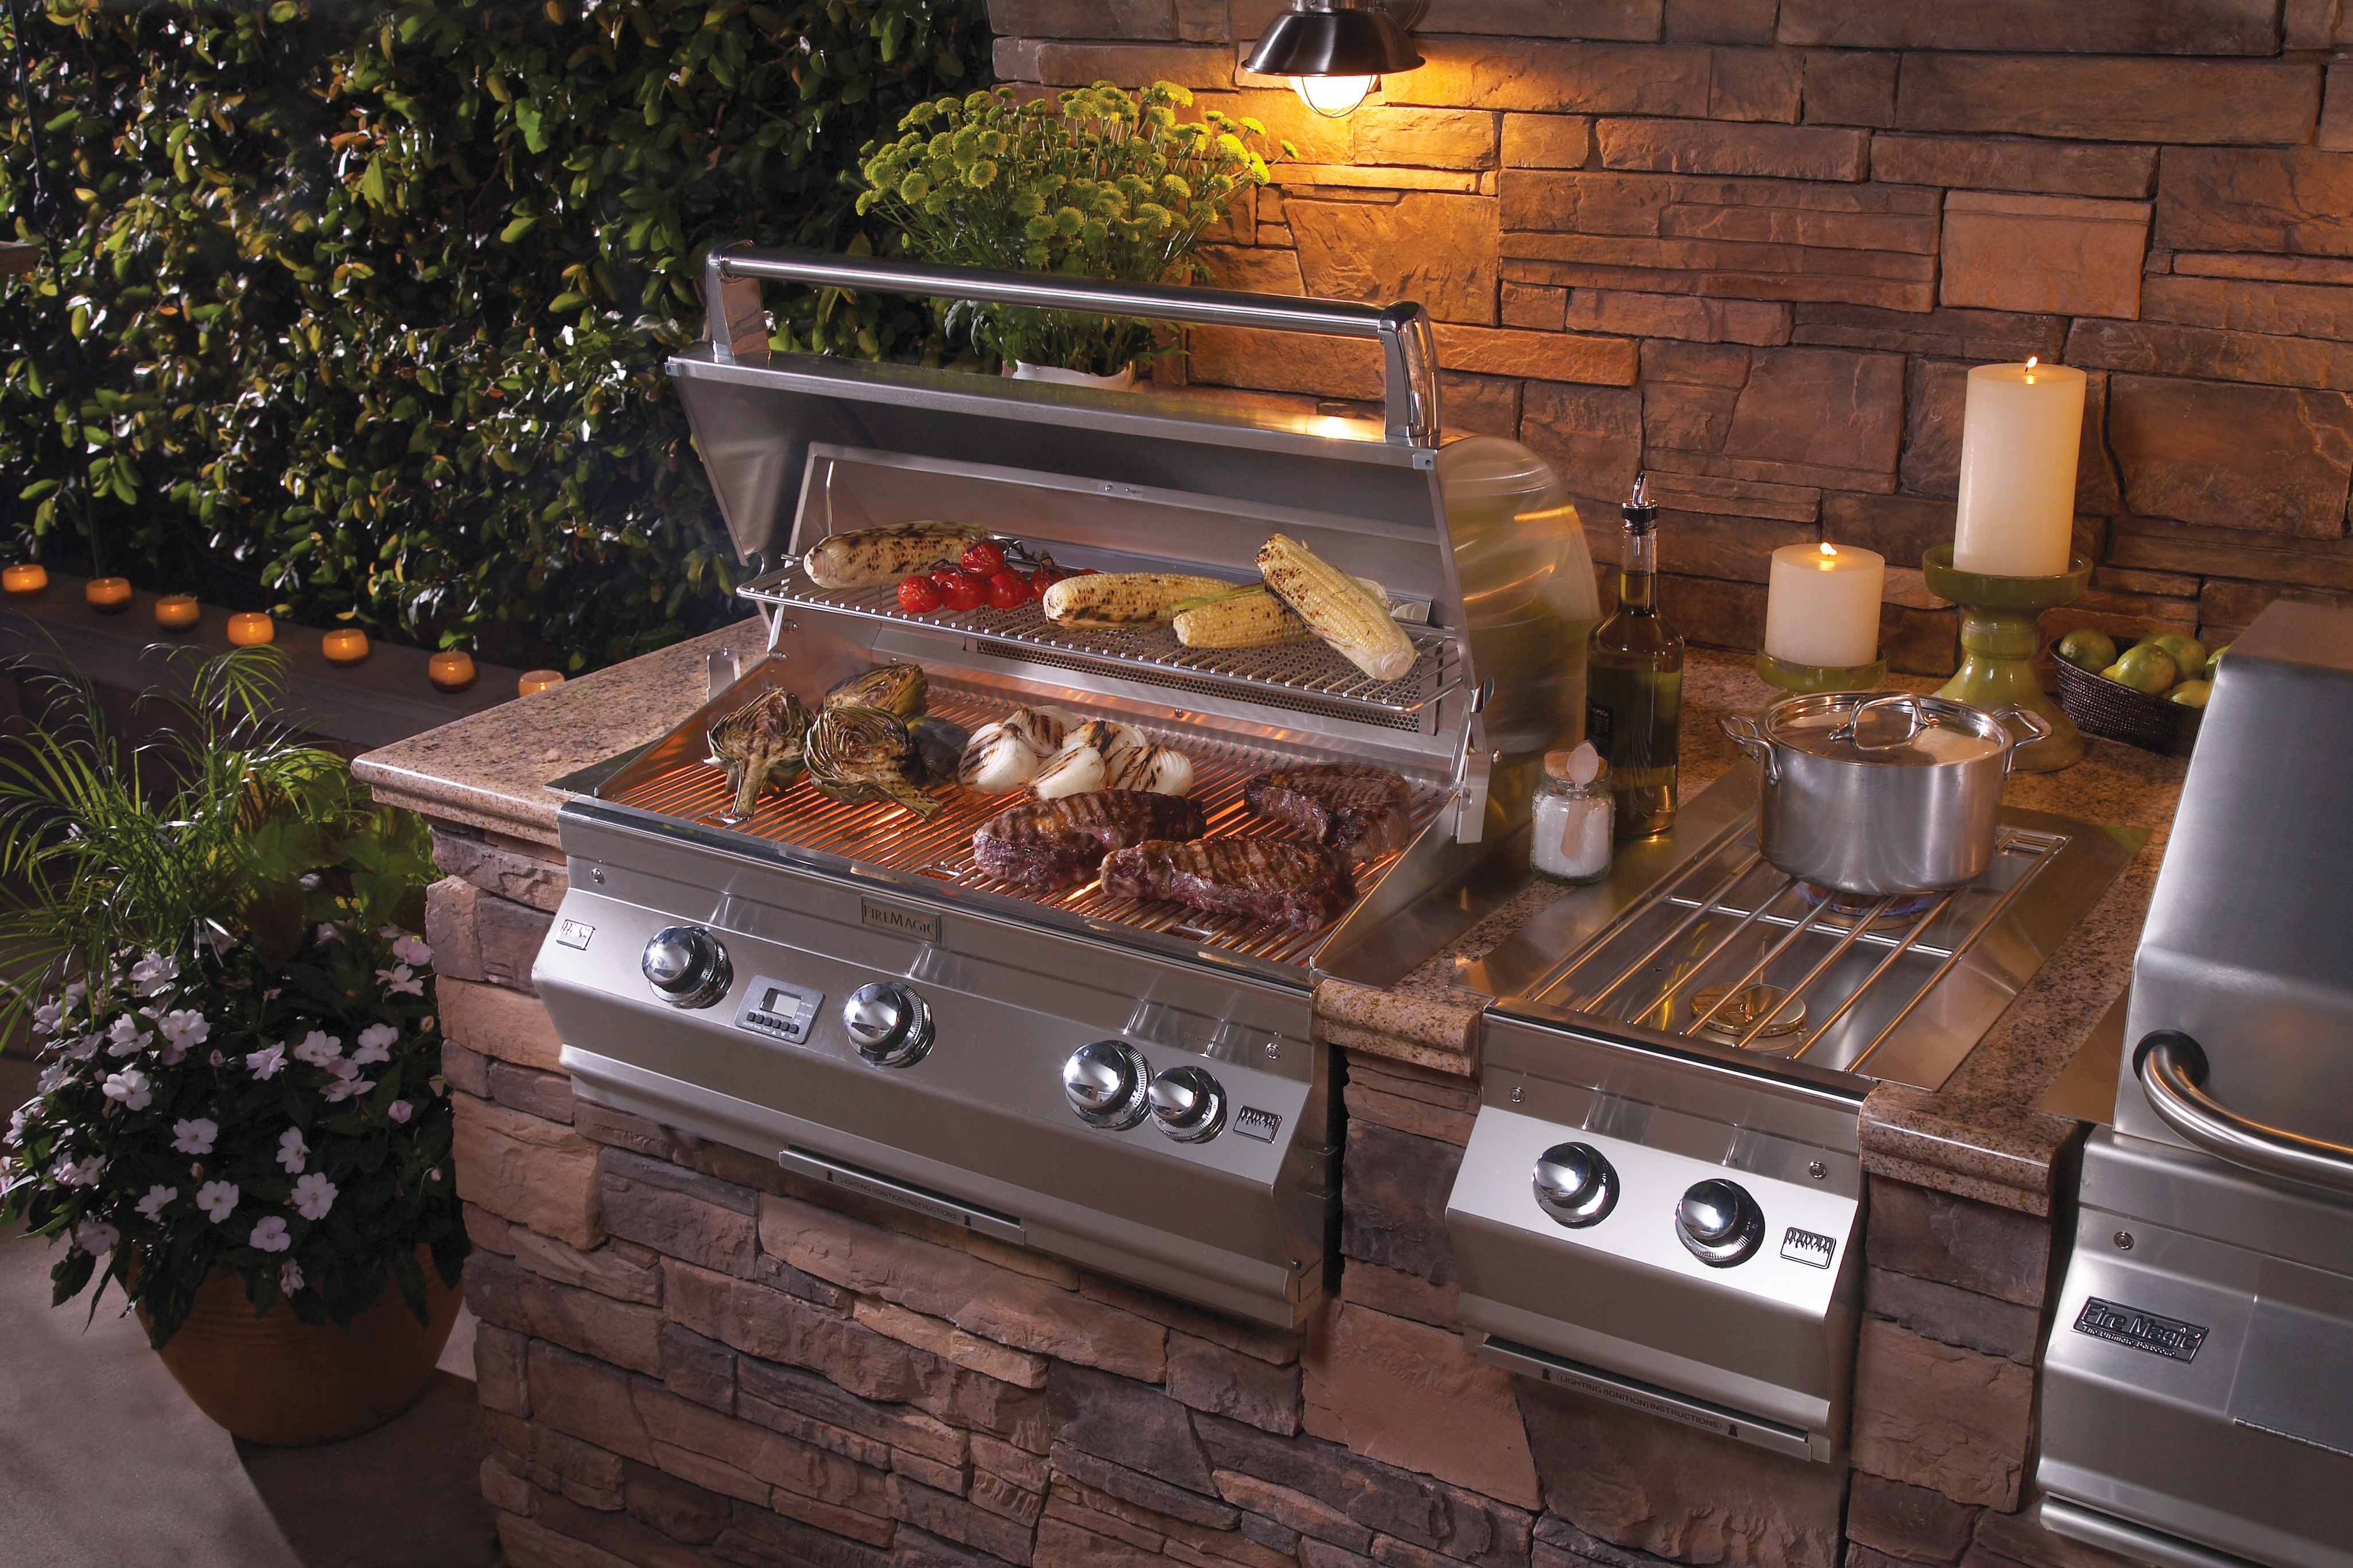 outdoor grill firemagic aurora a660 with double side burner OBUPNHG